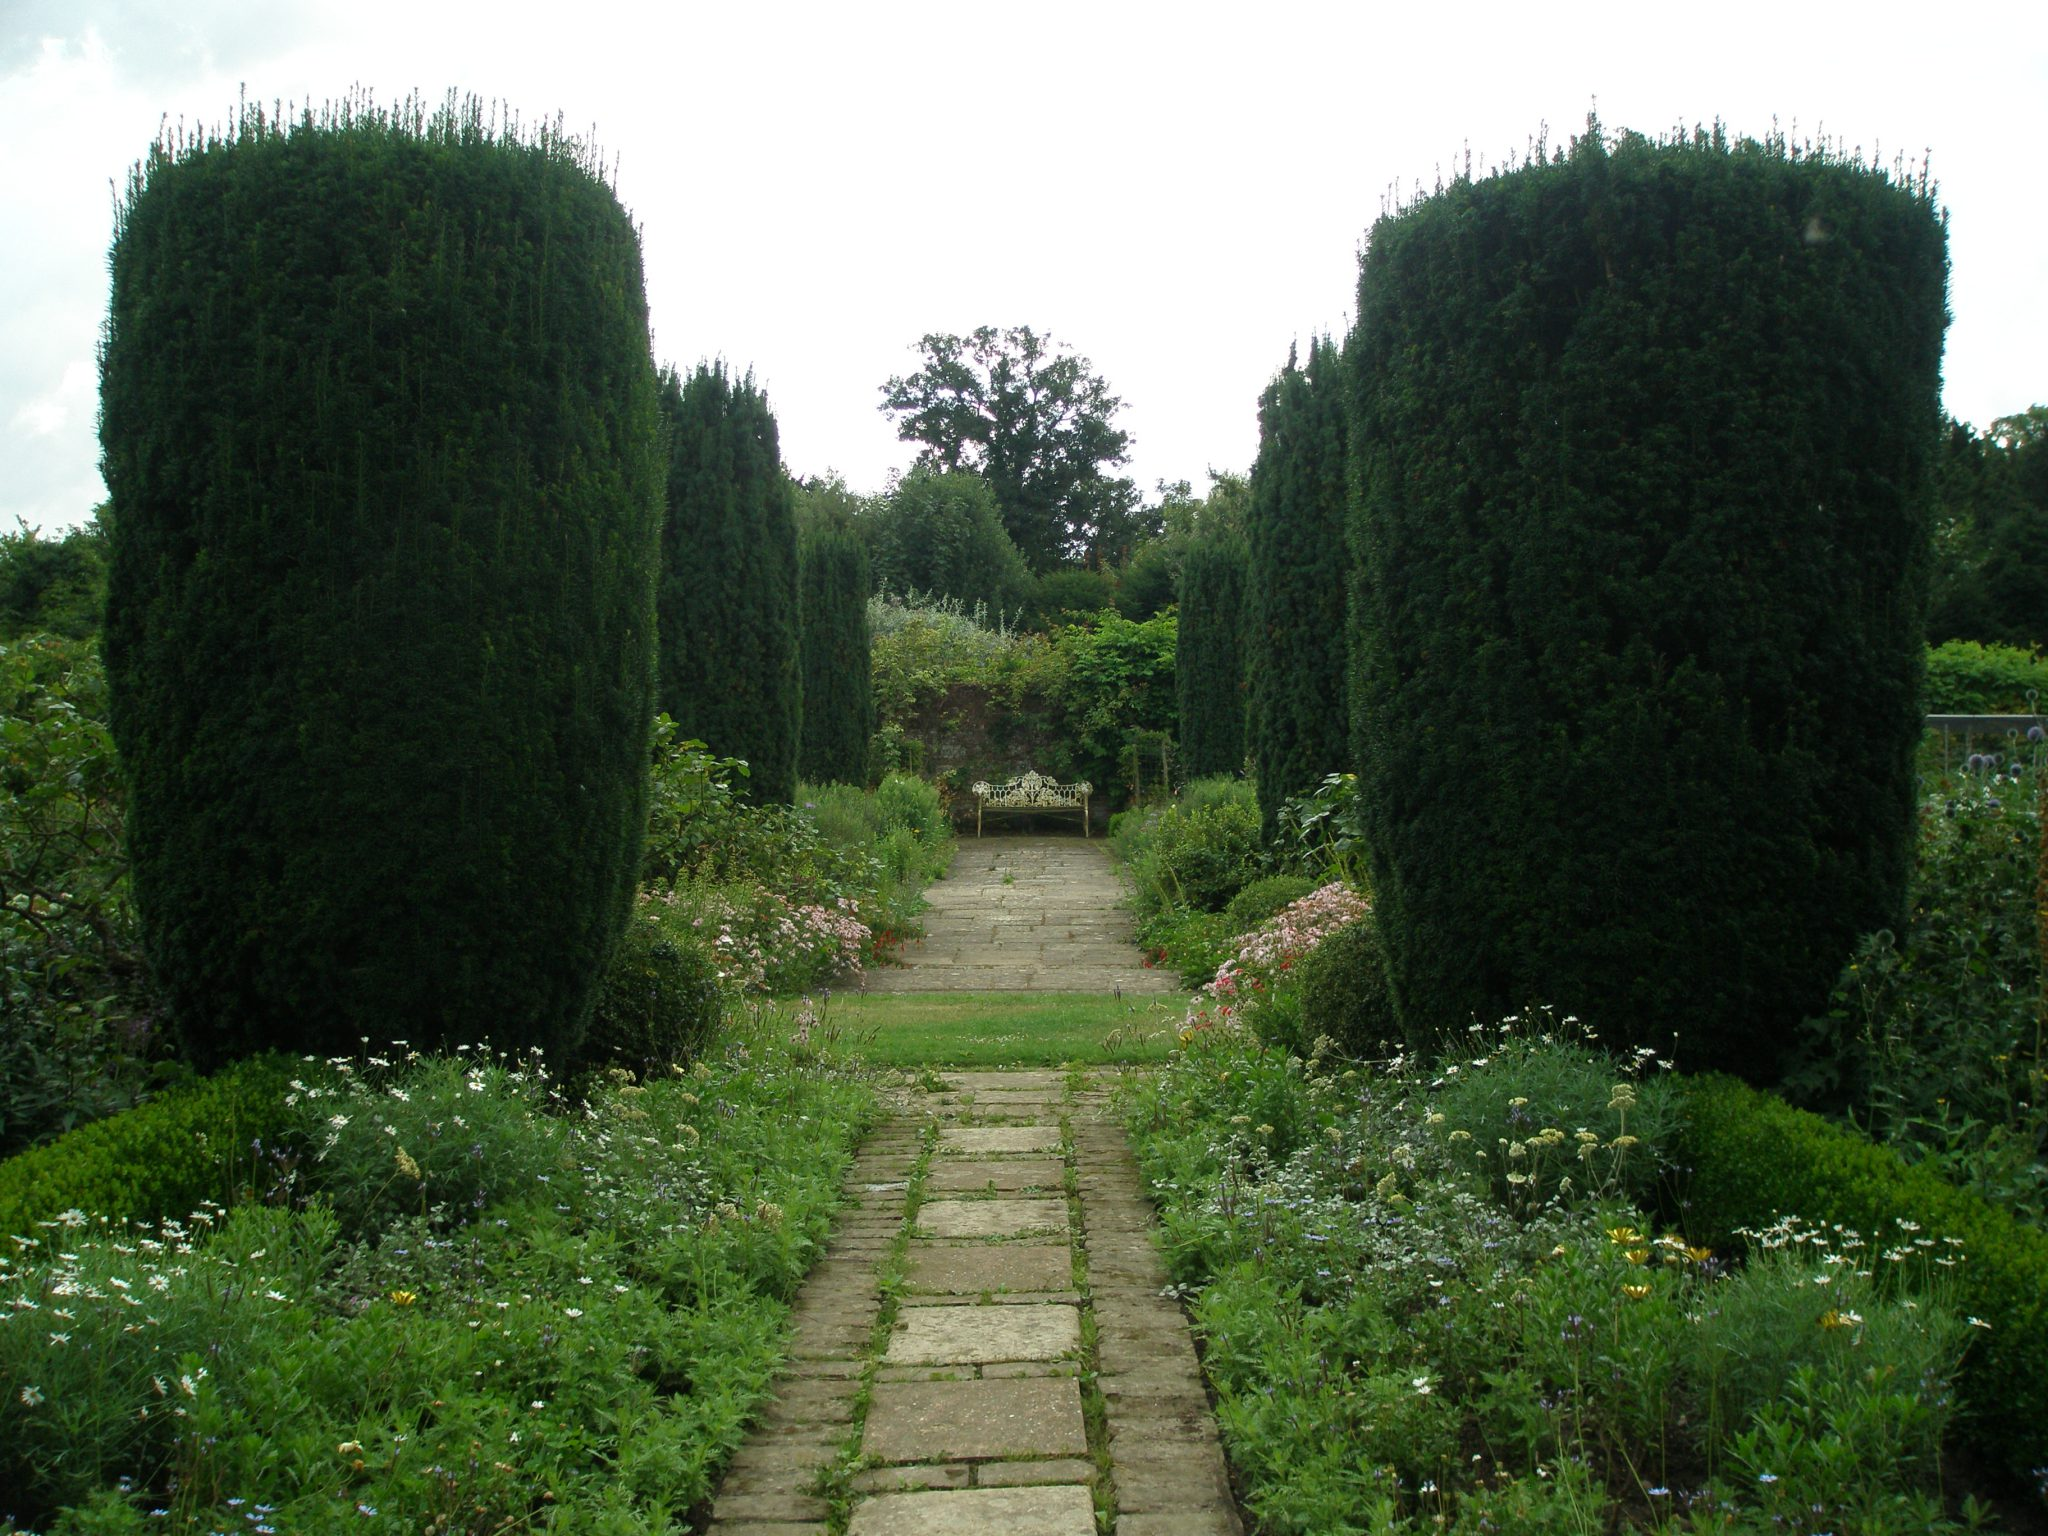 A secluded sitting area in the Walled Garden.